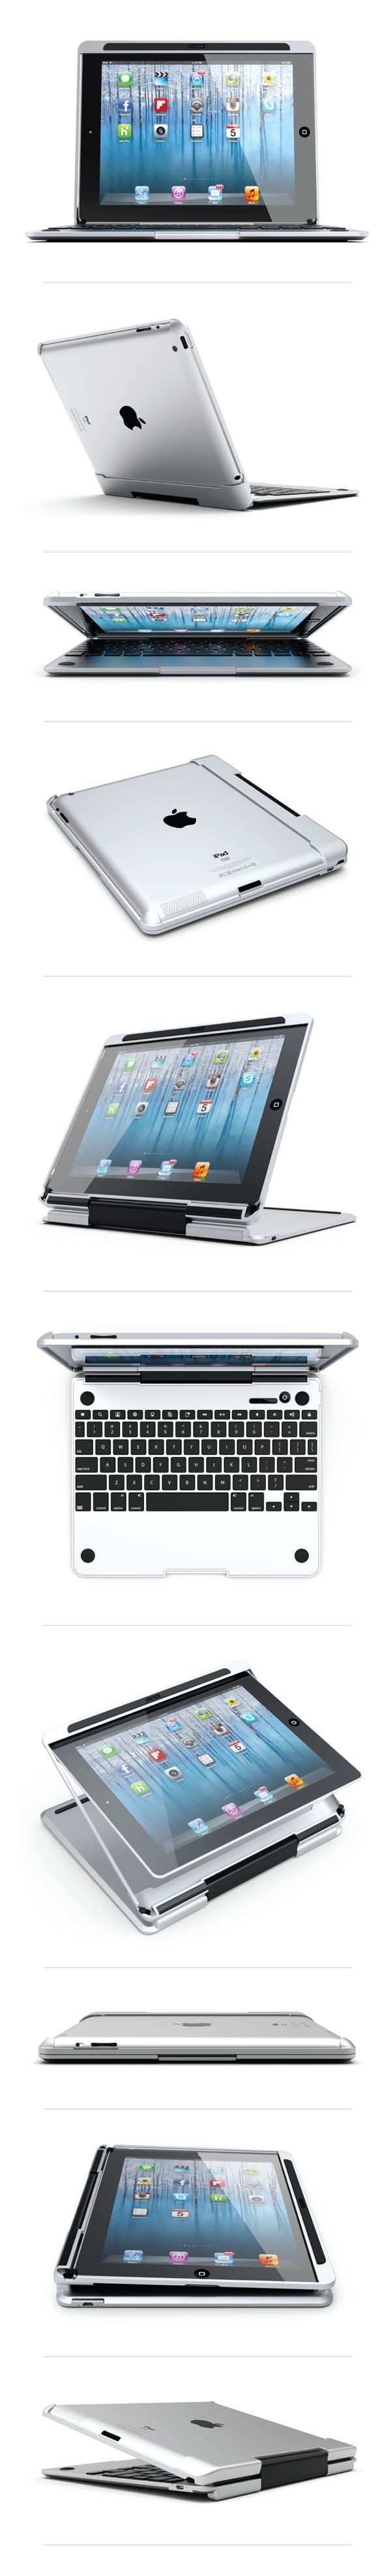 Turn Your iPad Into a Laptop With the Cruxskunk Ke...